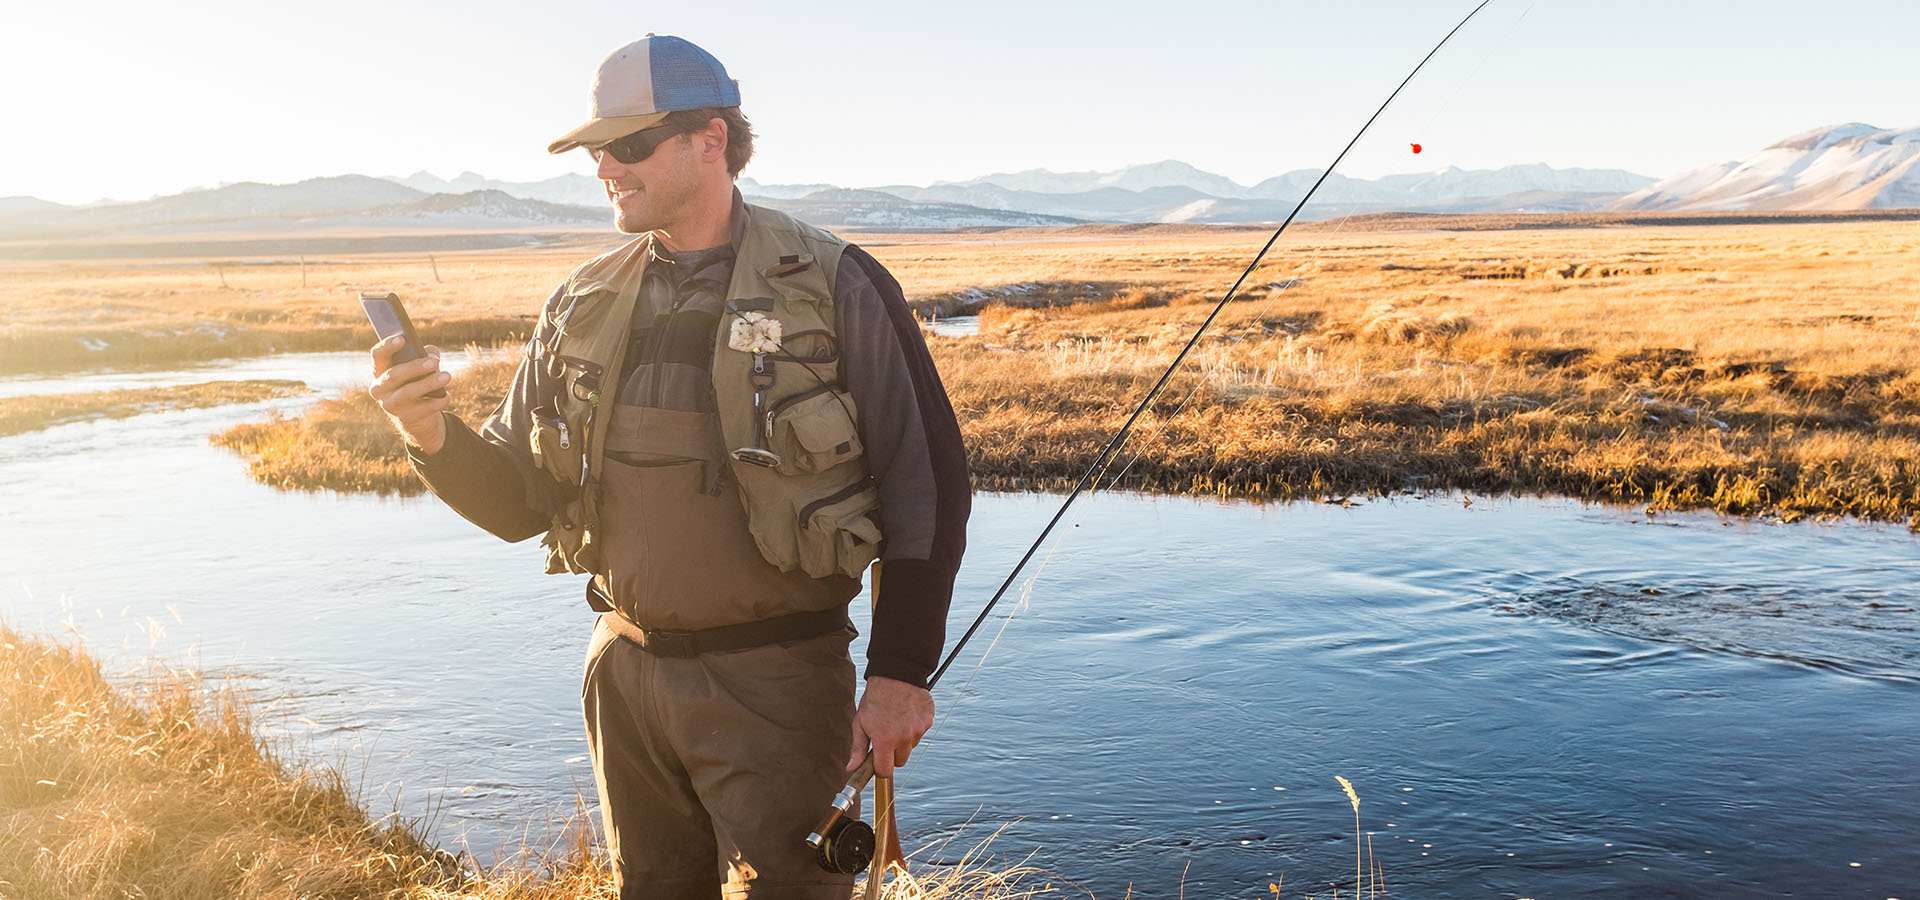 Slide - Fly fisherman using cell phone